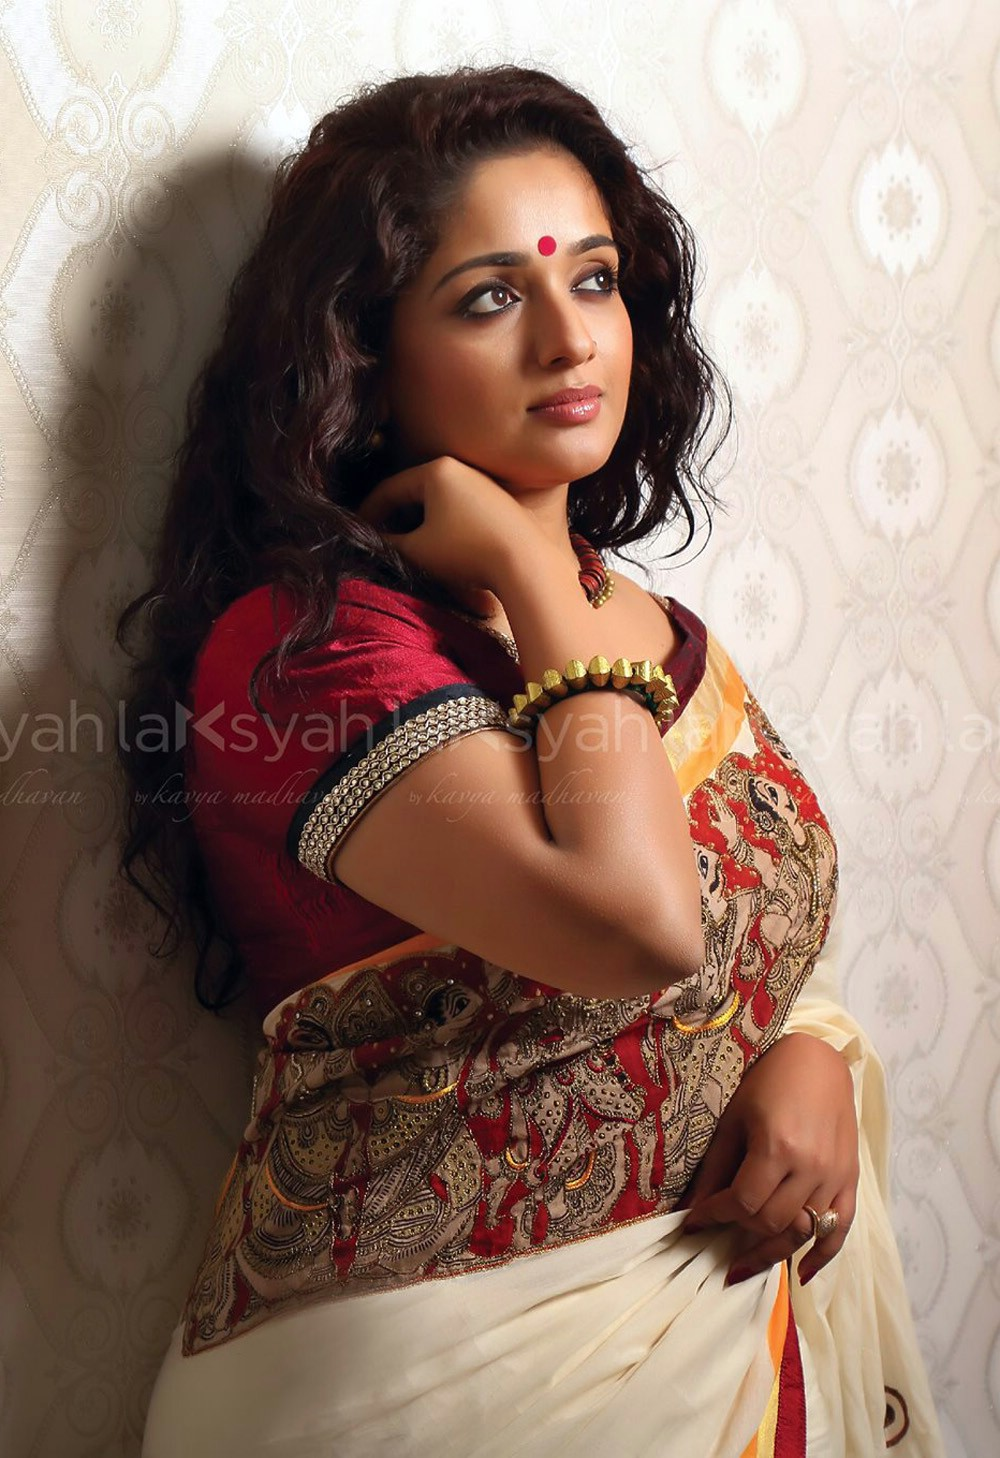 Kavya Madhavan Hot Photos In Saree 2016 Malayalam Actress -1440